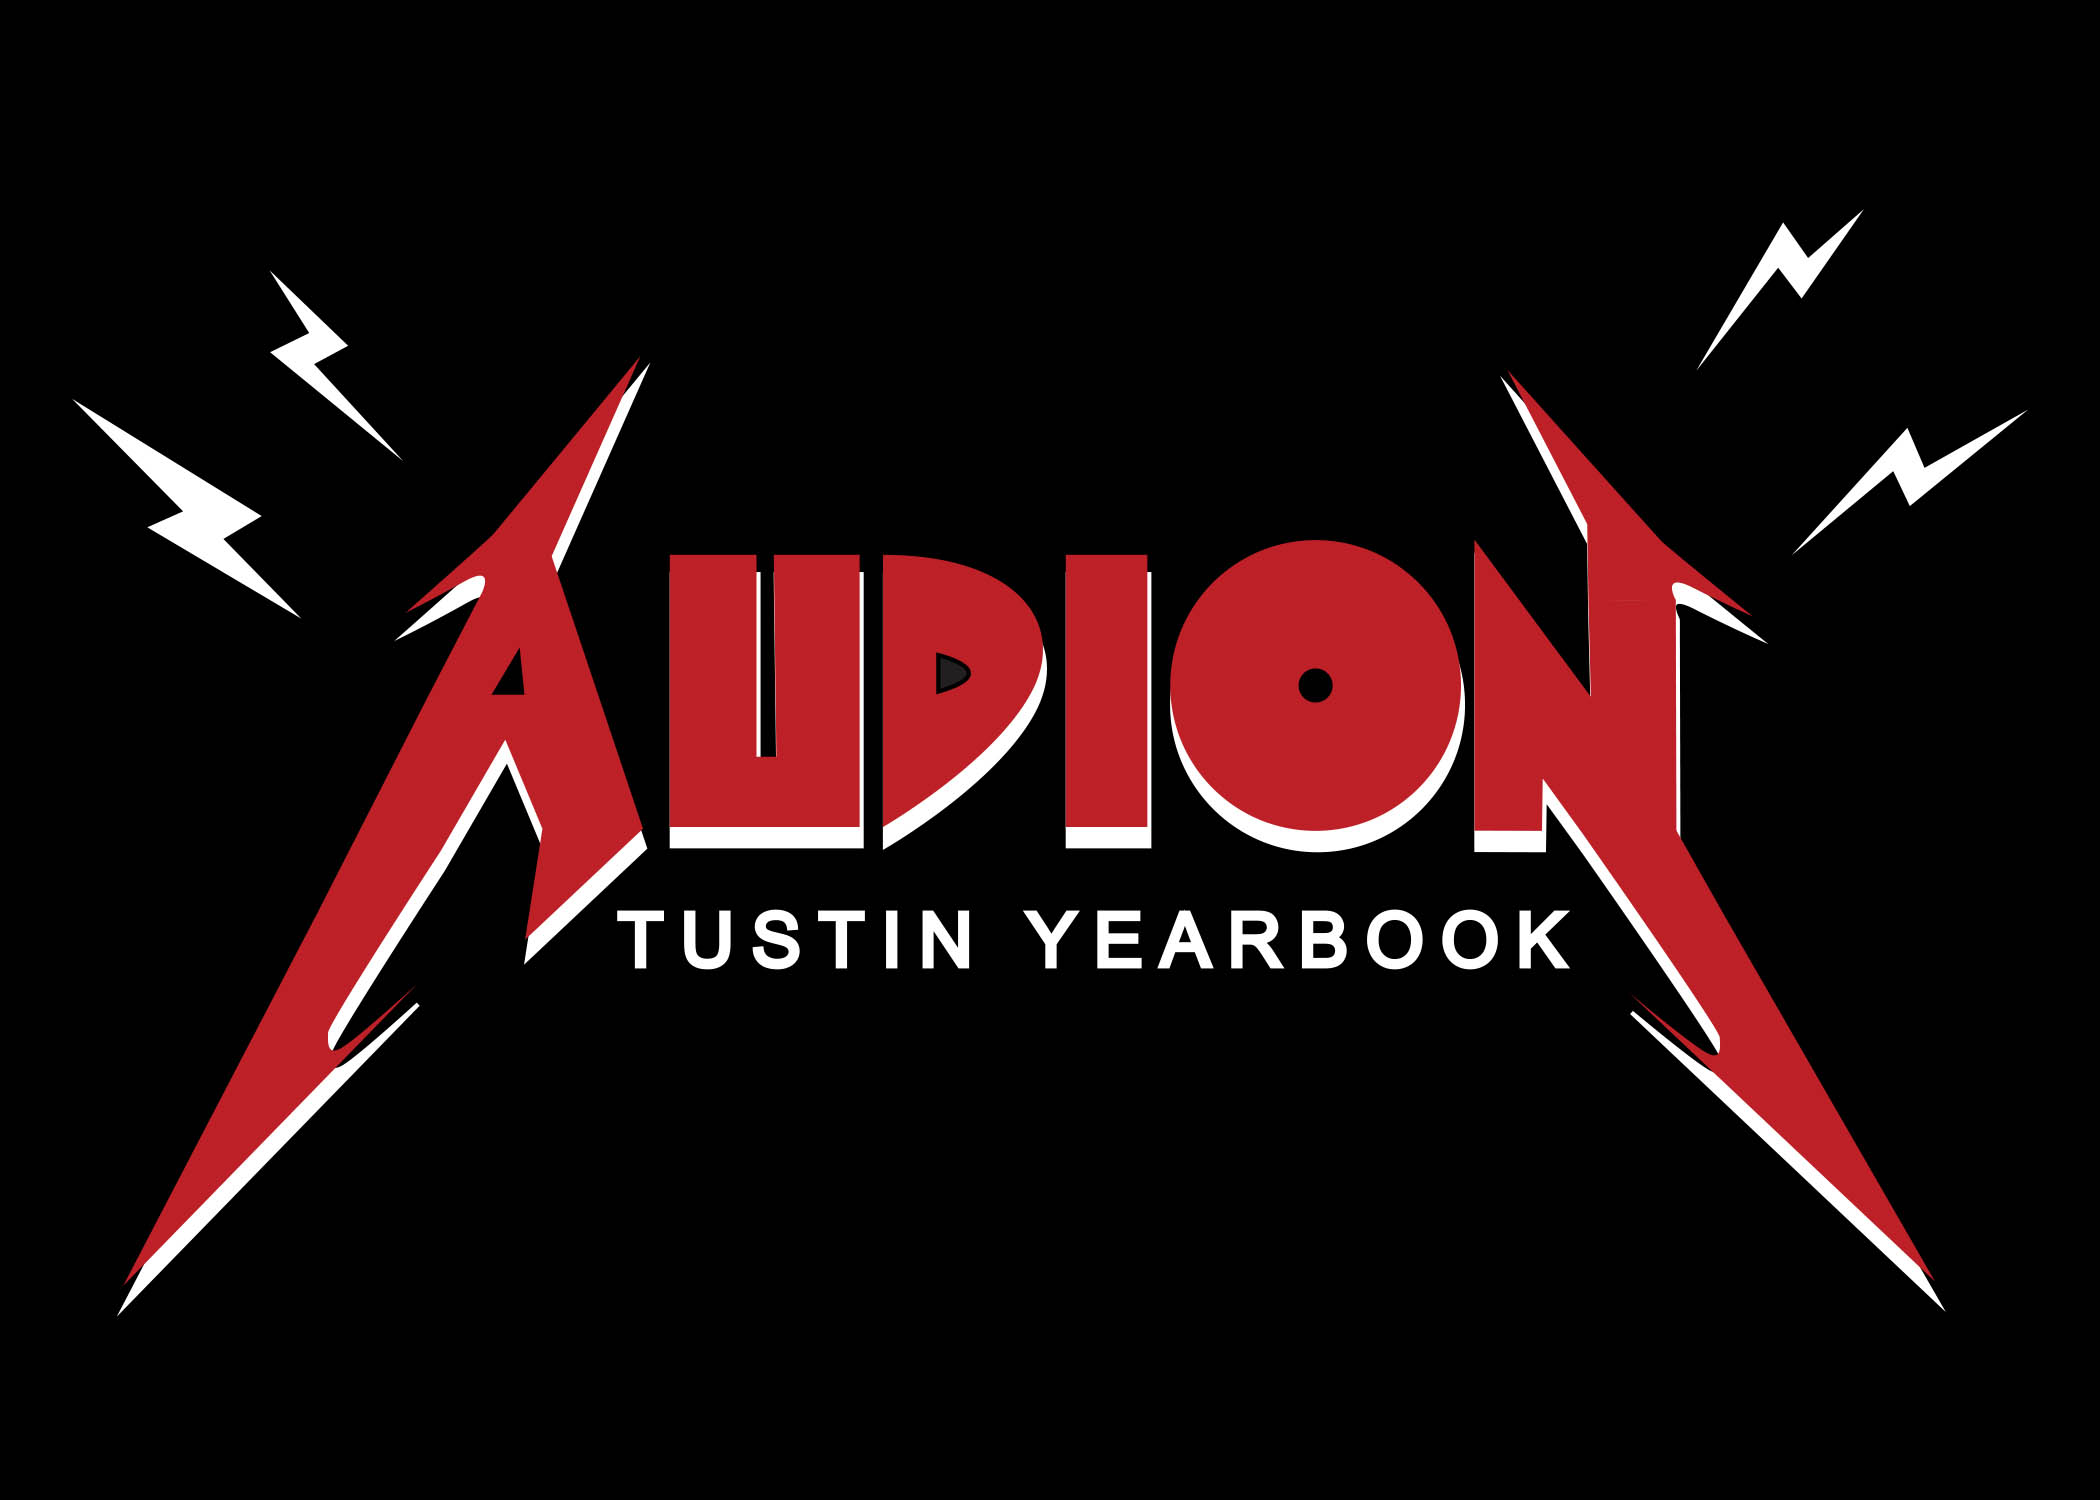 Audion Tustin Yearbook